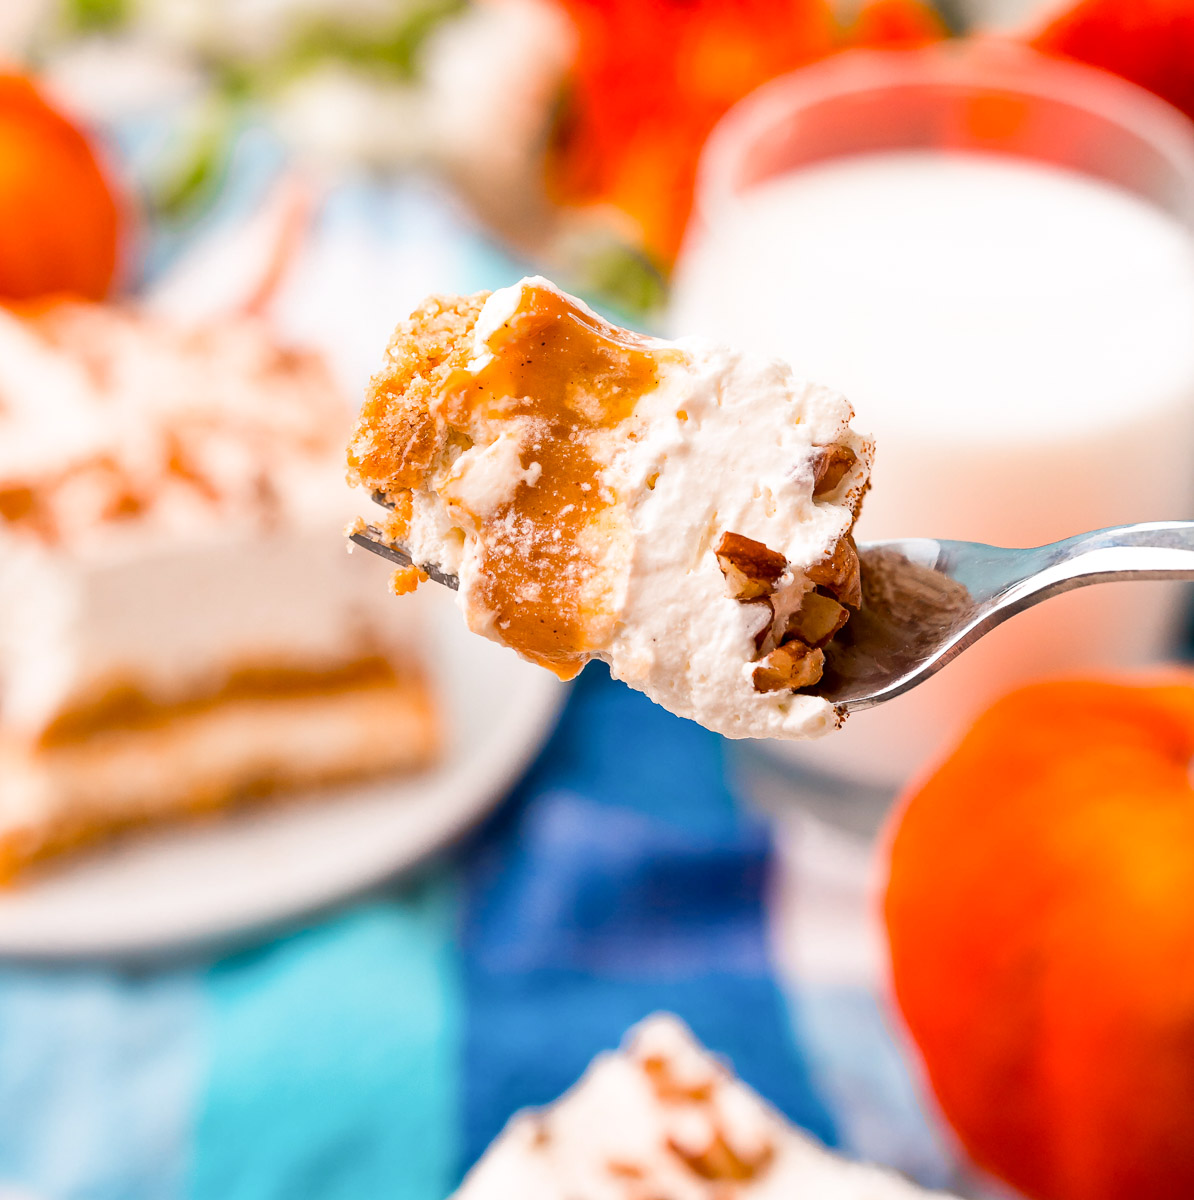 A close up picture of a fork with all of the layers of the Pumpkin delight on it.